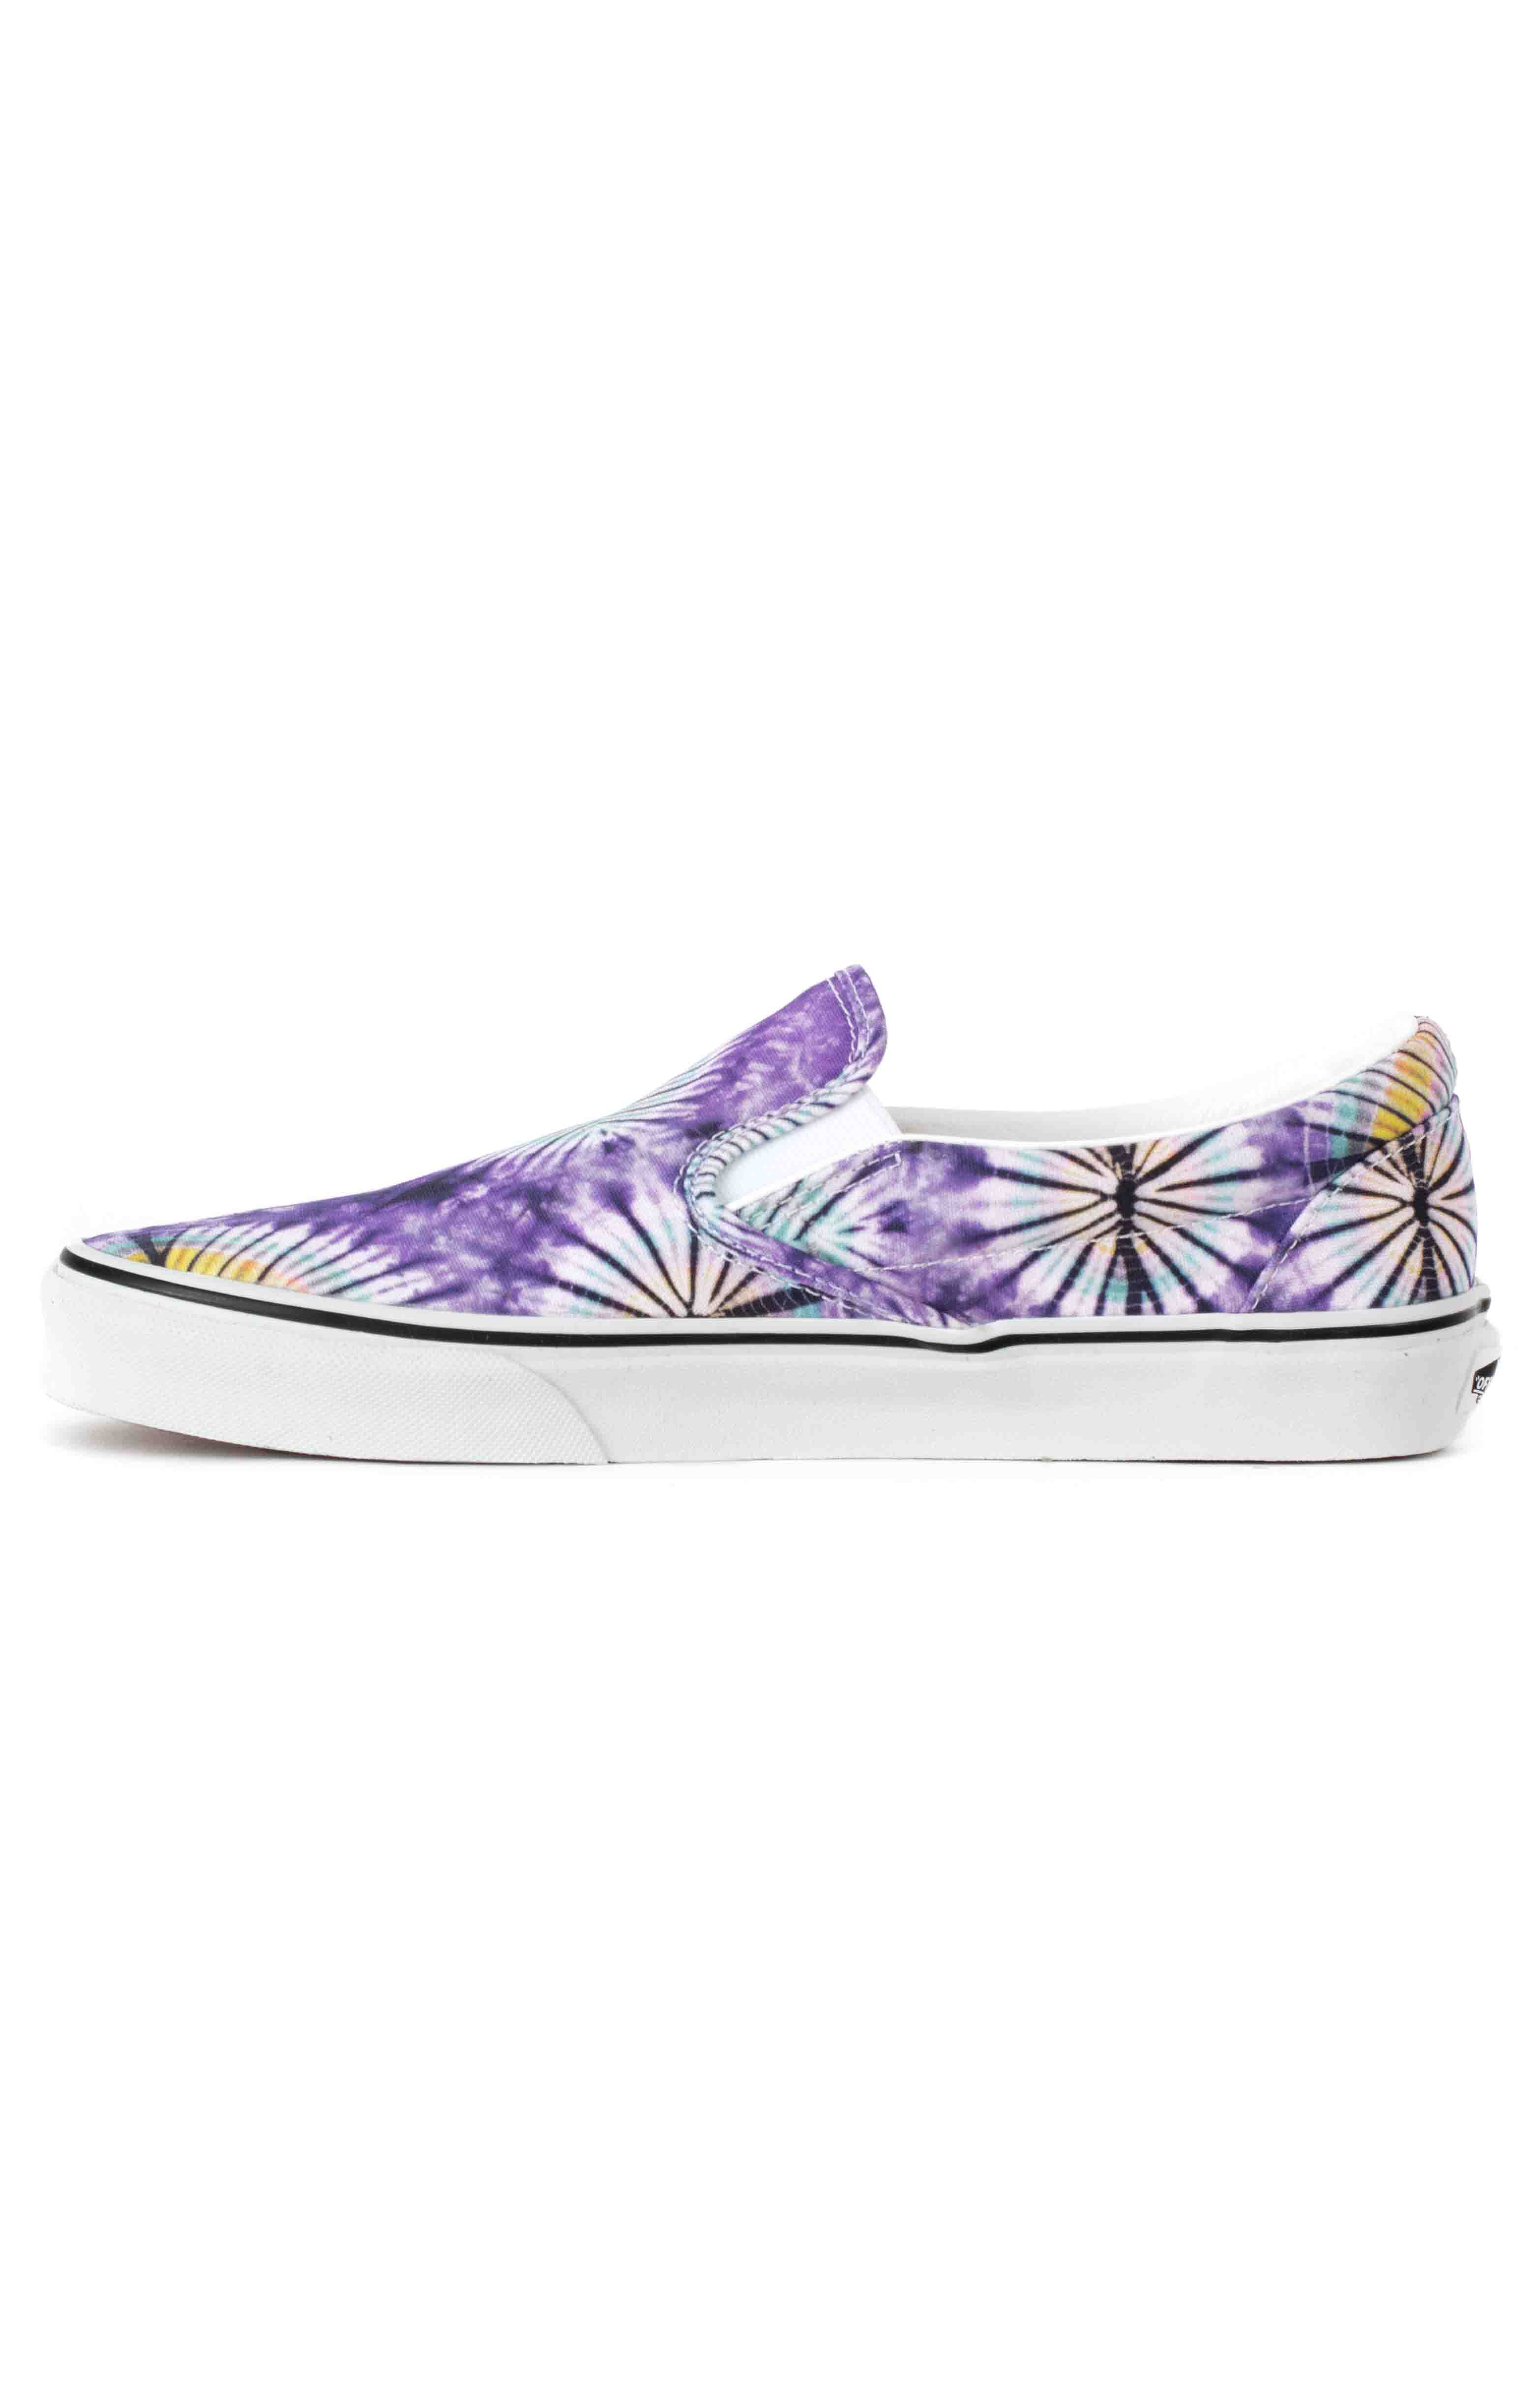 (AO86G6) New Age Classic Slip-On Shoes - Purple Tie-Dye  4